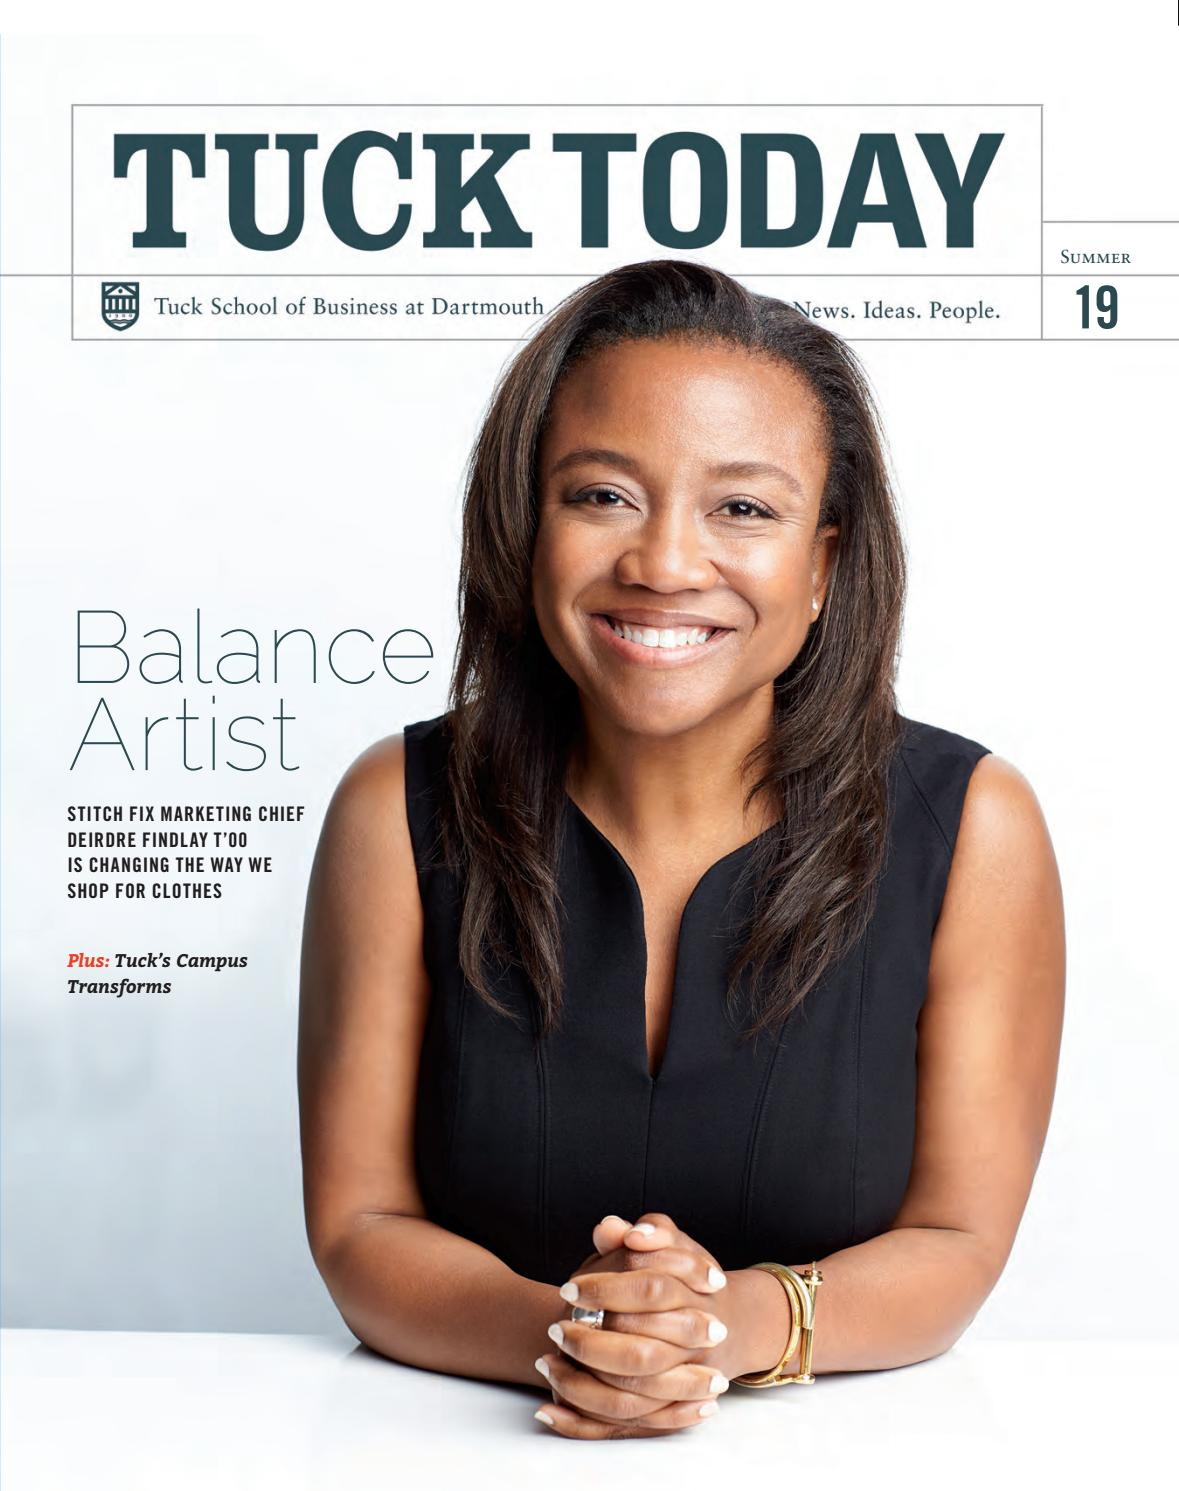 Tuck Today Alumni Magazine Summer 2019 By Tuck School Of Business At Dartmouth Issuu